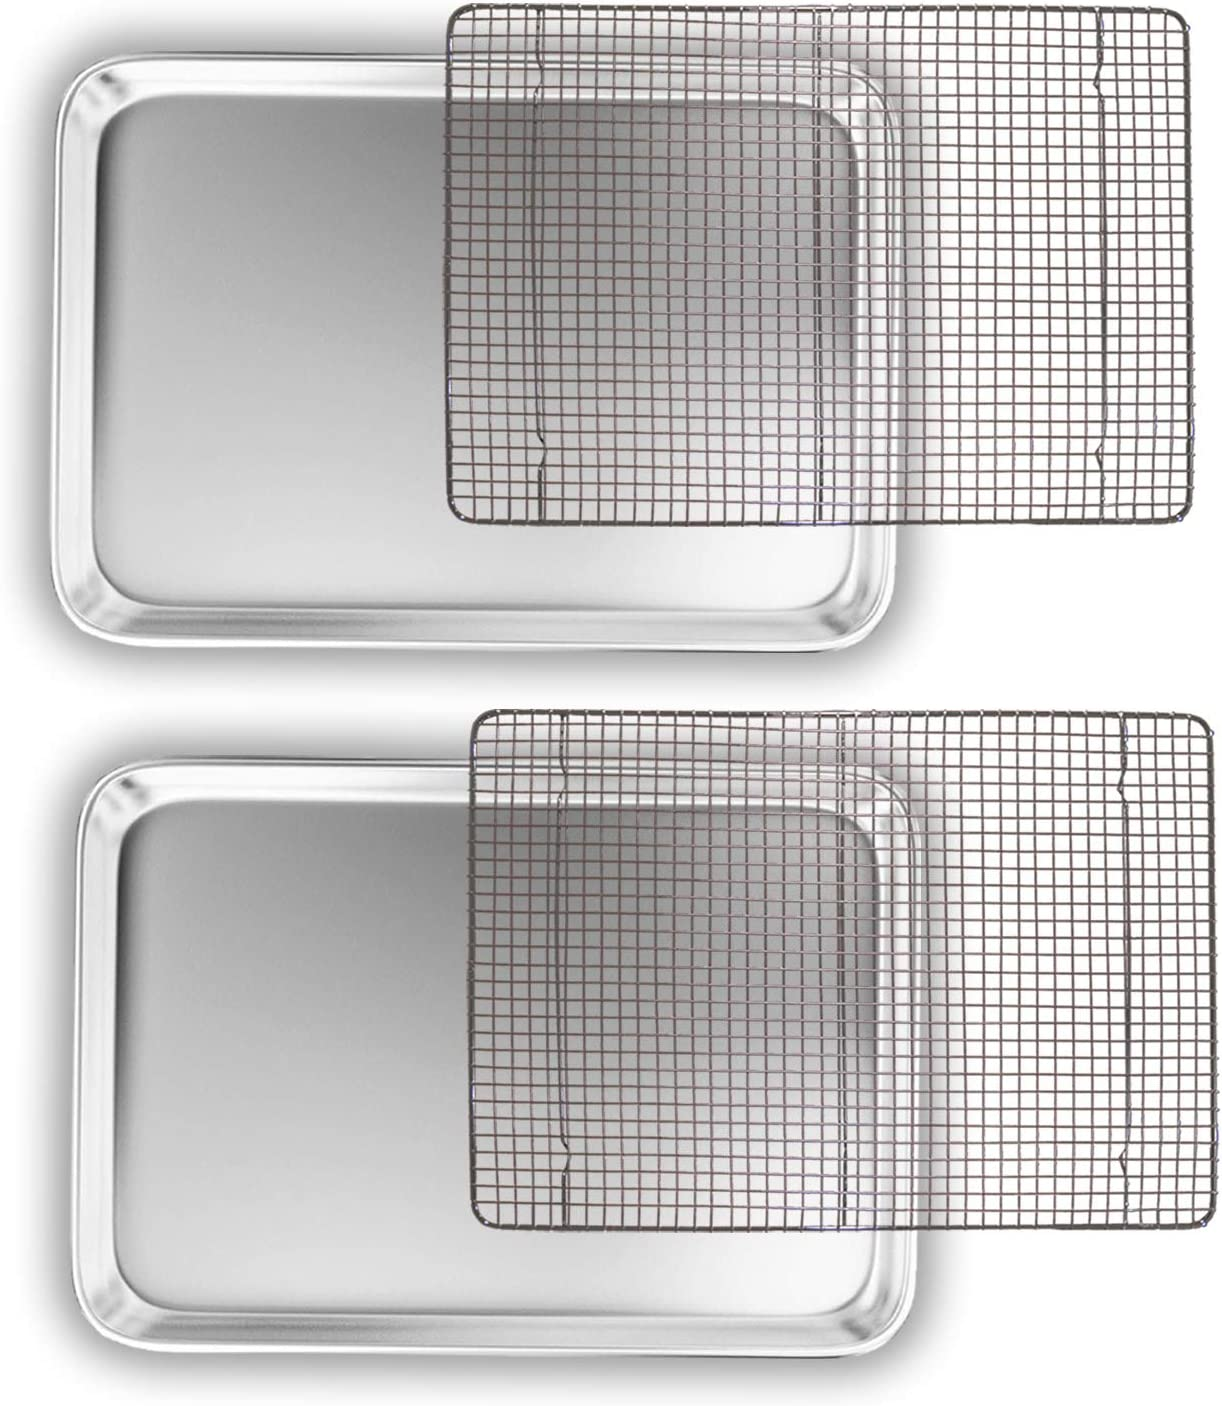 Bakeware Set – 2 Aluminum Sheet Pan, 2 Bakeable Cooling Rack (Stainless Steel) –All Half Size – for Commercial or Home Use. Non Toxic, Perfect Baking Supply set for gifts